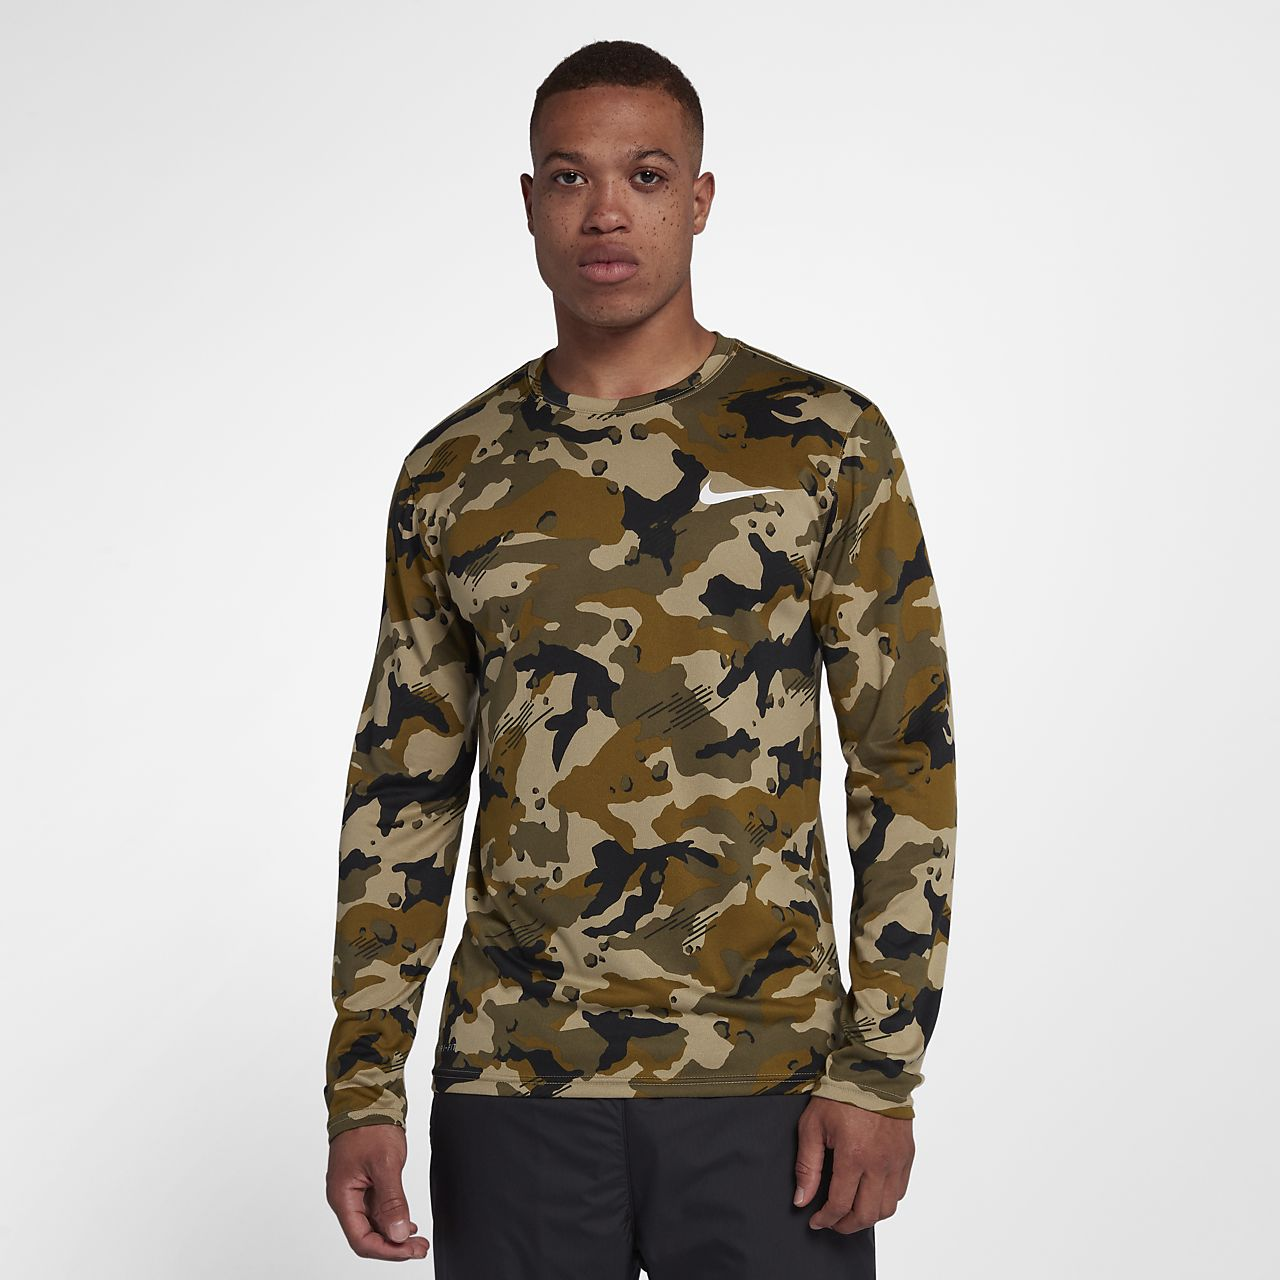 Nike Dri-FIT Legend Langarm-Trainingsoberteil für Herren im Camo-Design